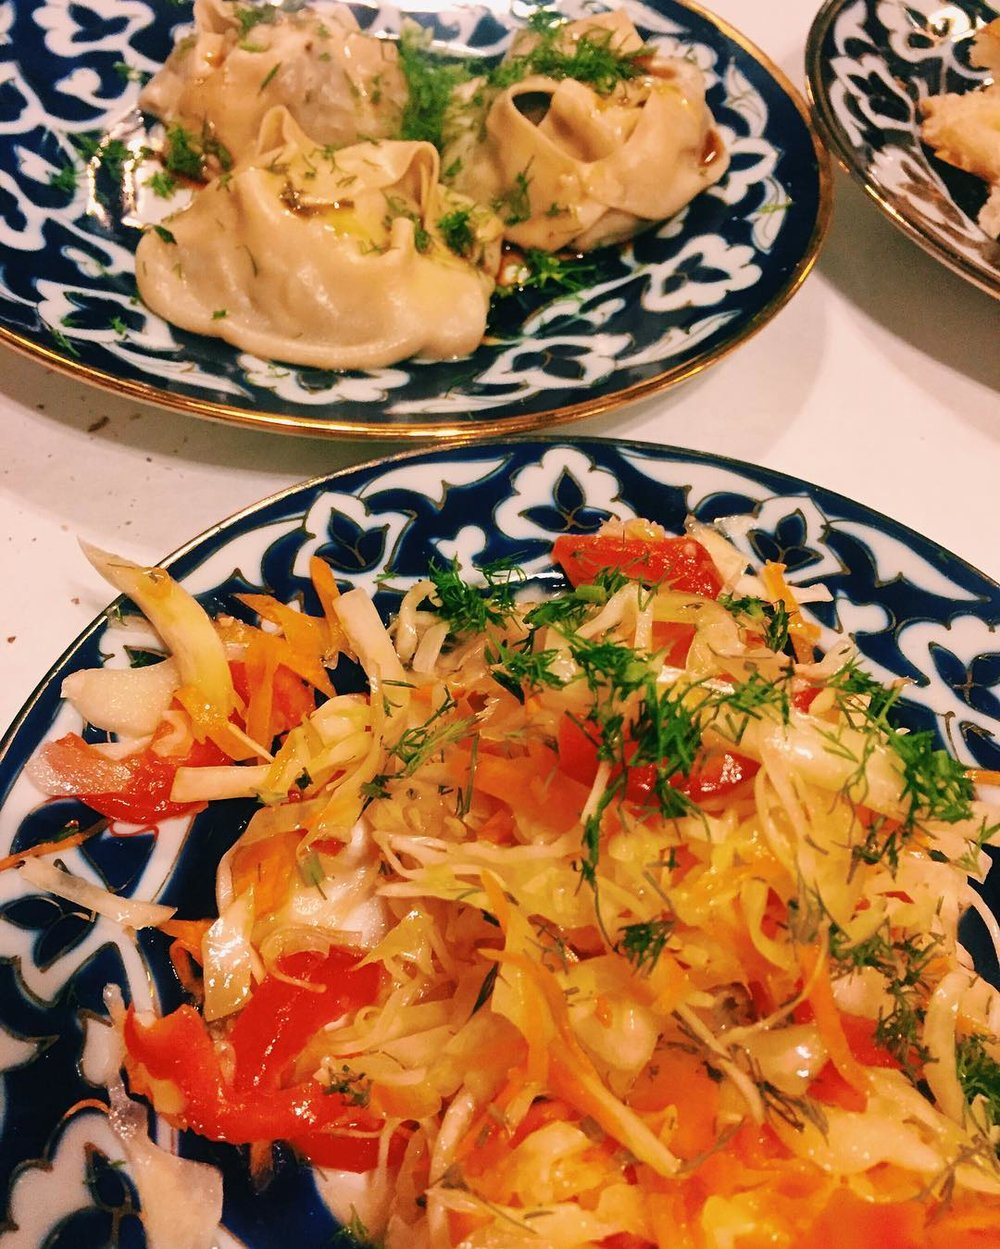 Our server at Taste of Samarkand in Rego Park suggested we get the cabbage salad as an app and she was right–it was delicious! #regopark #regoparkfood #middlevillage #middlevillagefood #regoparkny #middlevillageny #queensfood #food #queensistasty #queenseats #eeeeeats #heartofqueens #tasteofsamarkand (at Taste Of Samarkand)